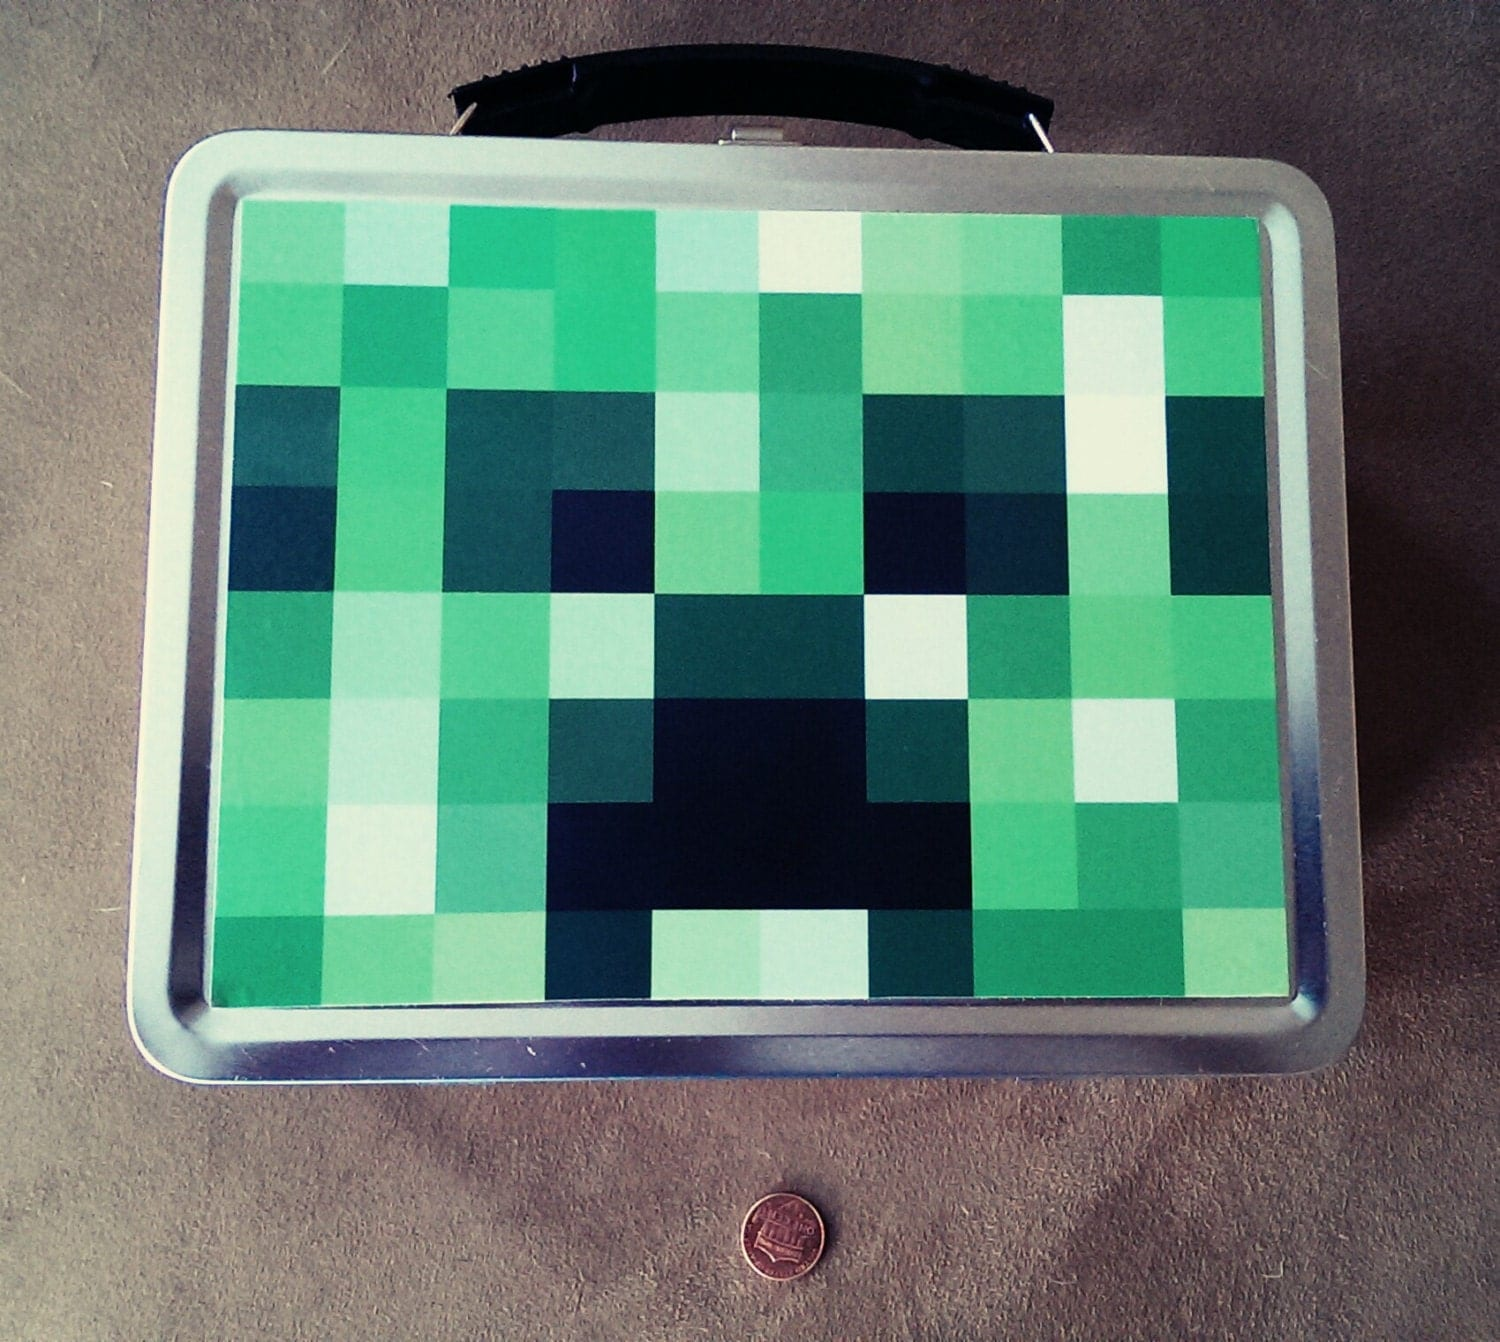 Minecraft Creeper Lunch Box By Minecrafting On Etsy